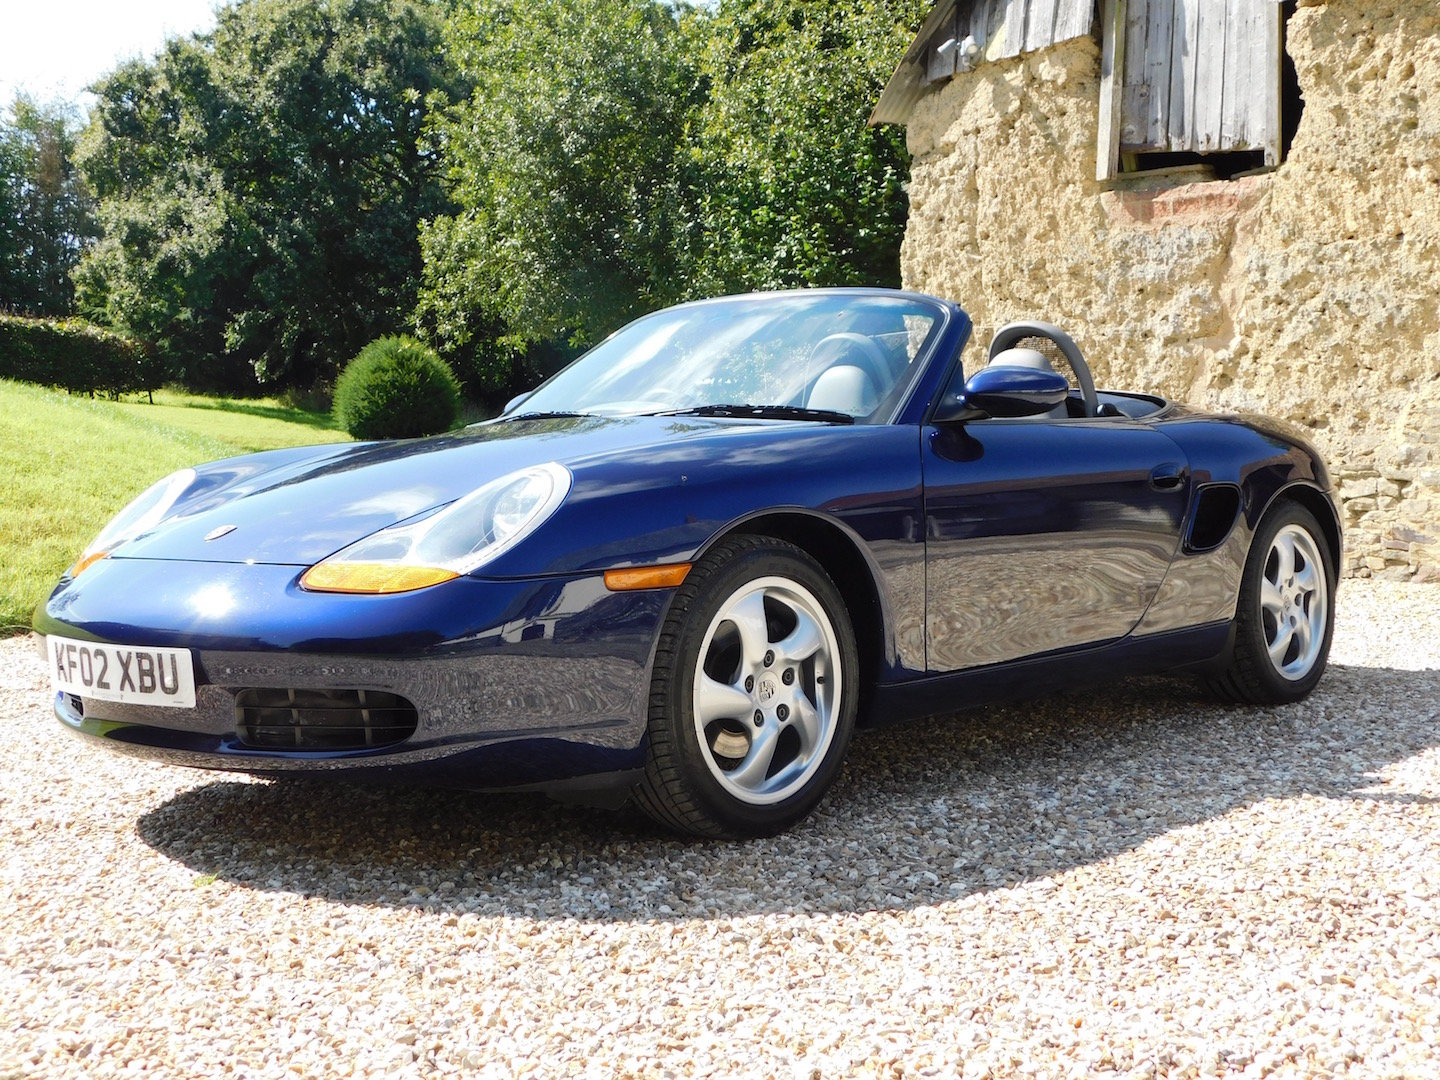 2002 Porsche 986 Boxster 2.7 - 35k miles, 1 owner from new For Sale (picture 4 of 6)